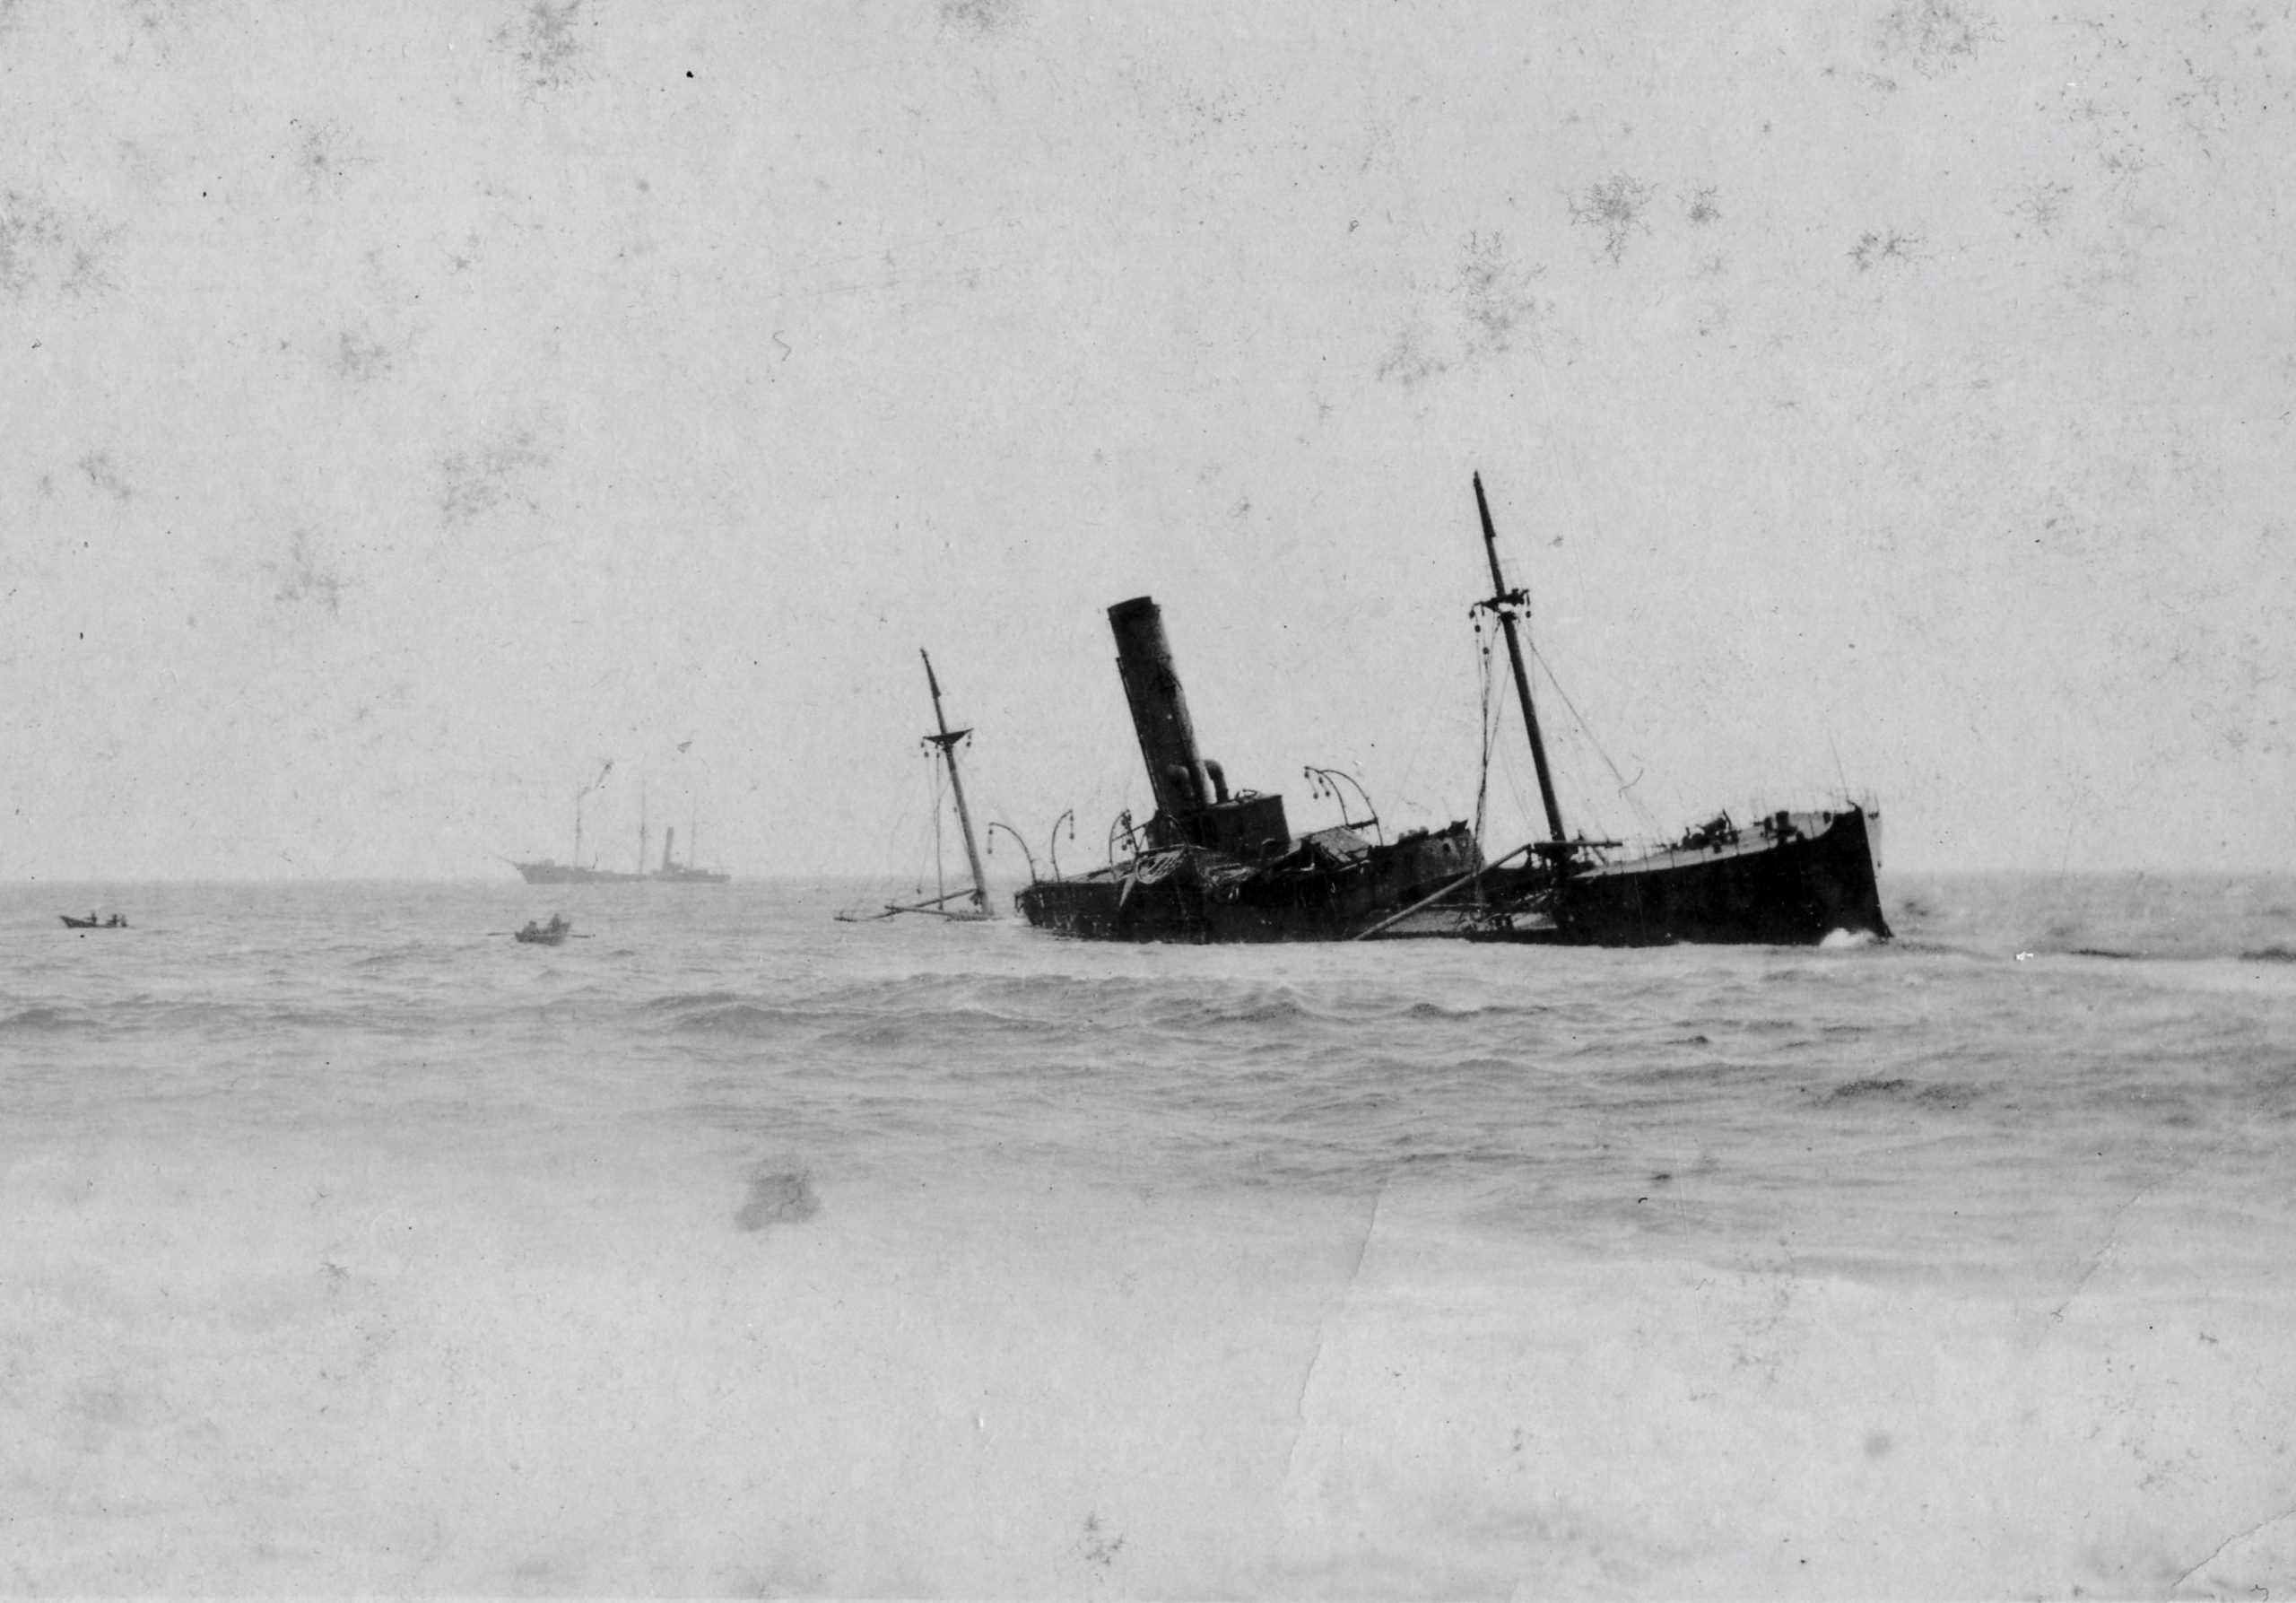 Black and white archival photograph of large passenger liner ship, the SS Florizel, run aground in ocean.